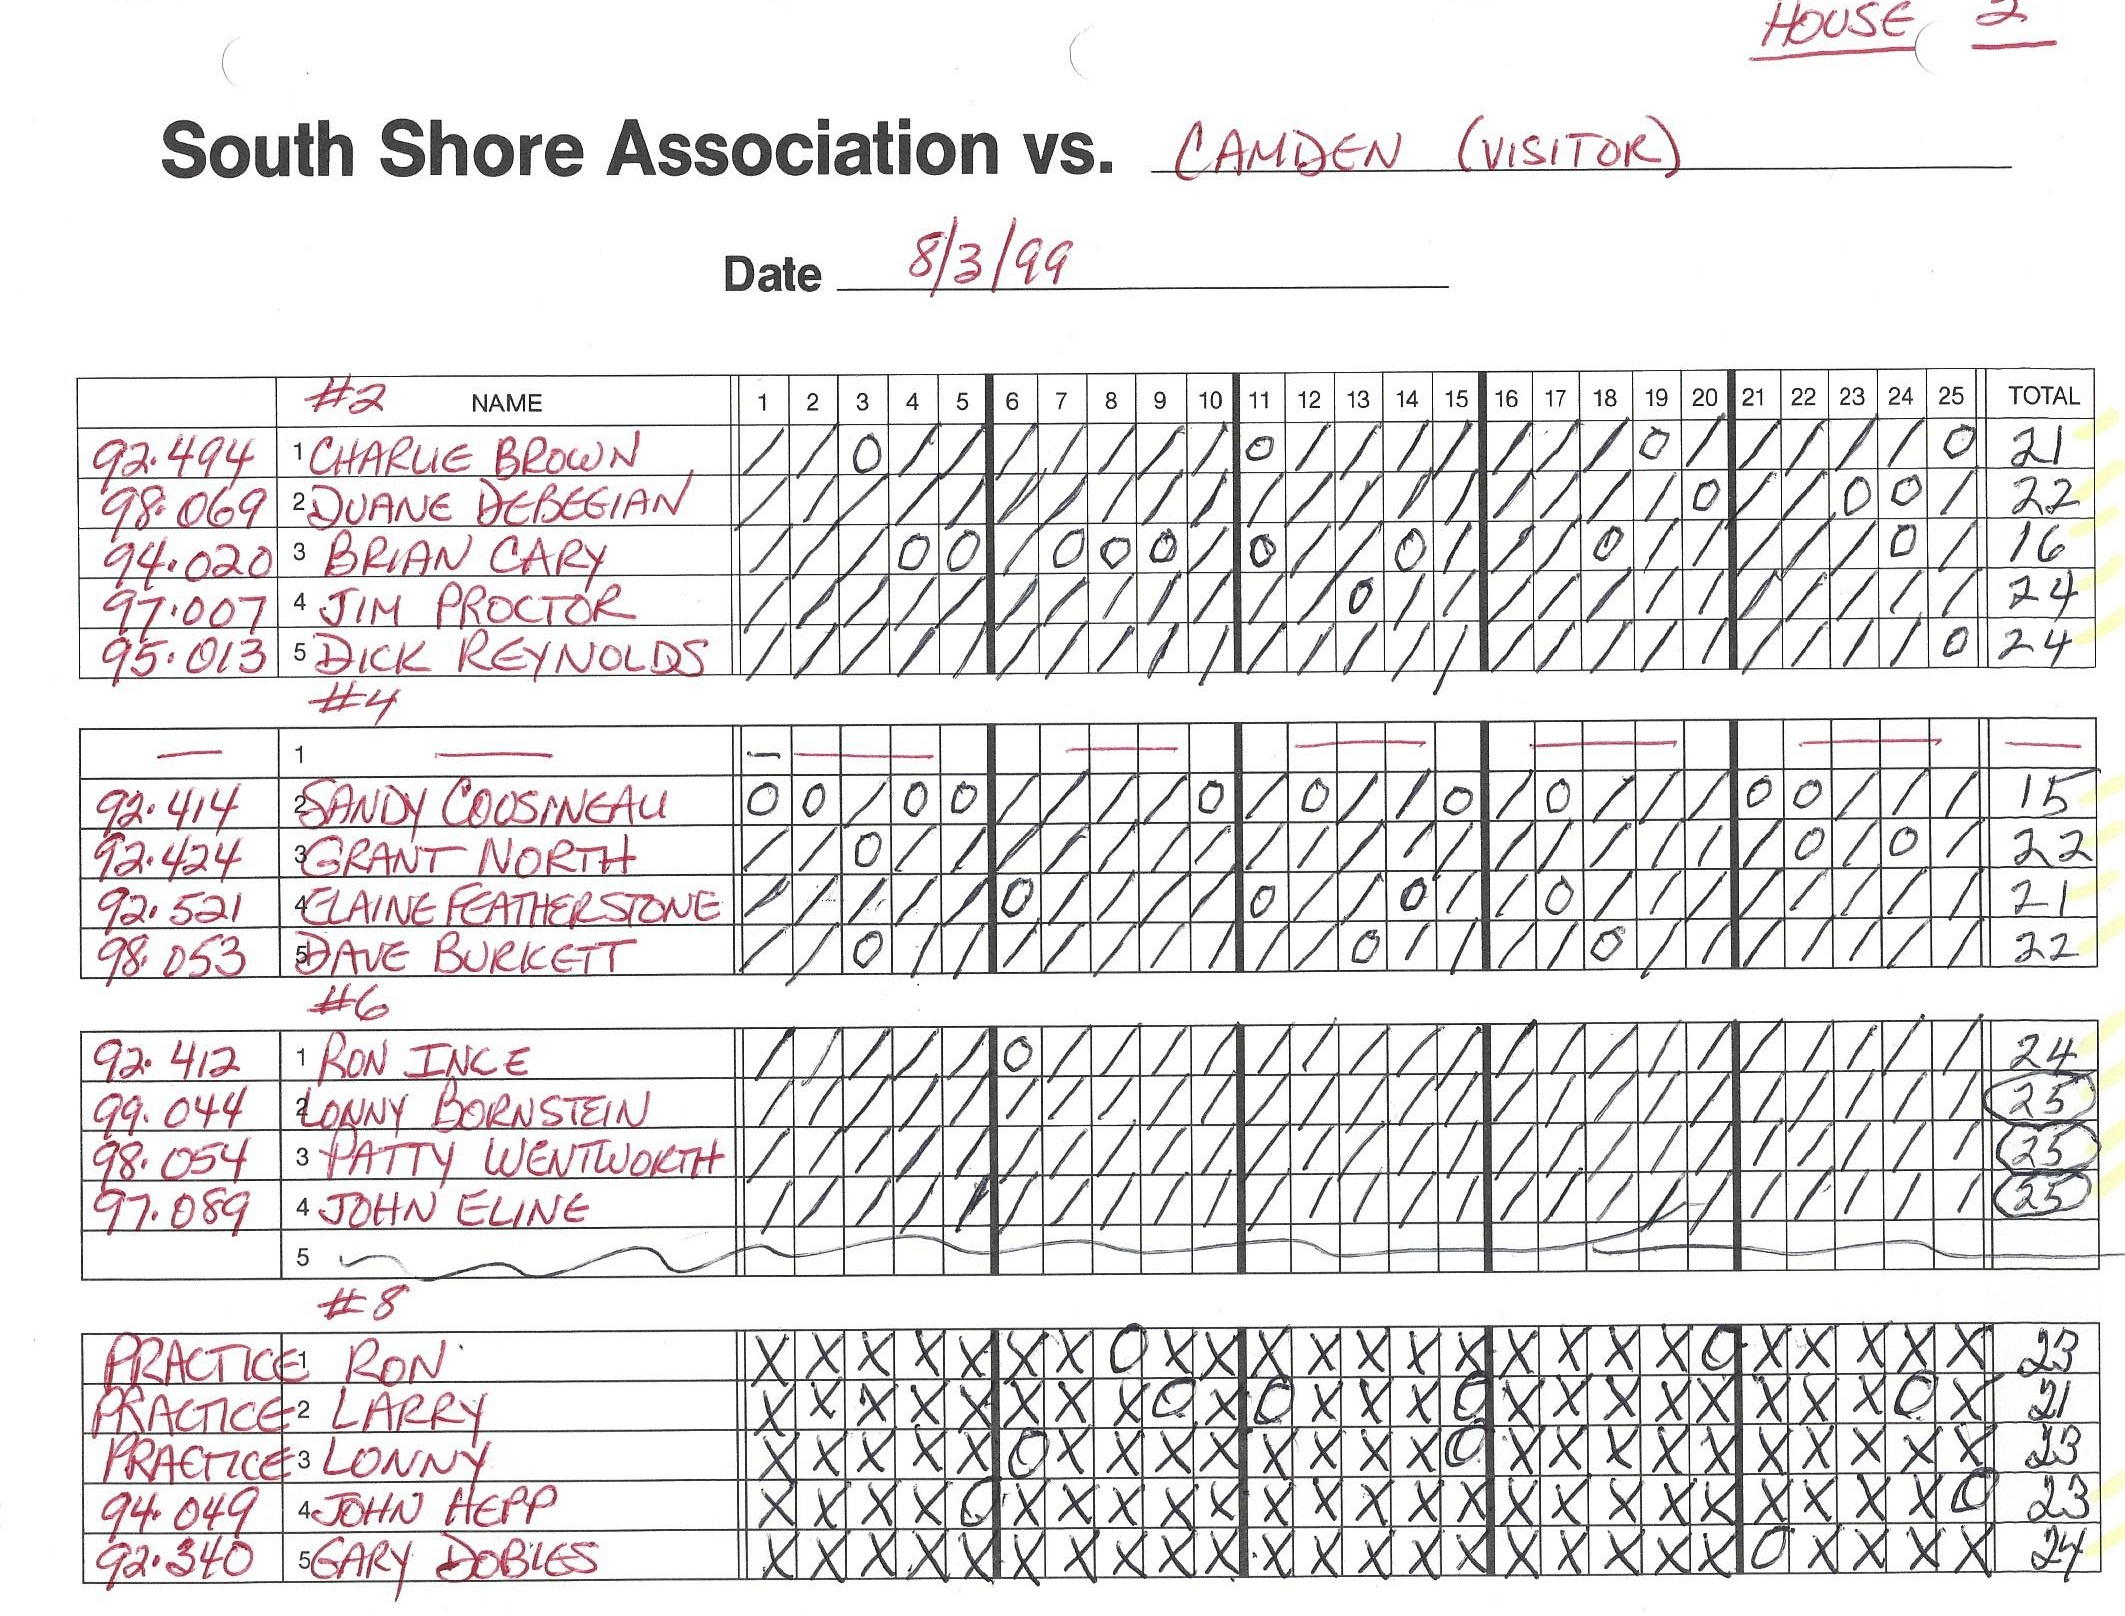 1999 CNYTL S Shore 0803 scoresht 1